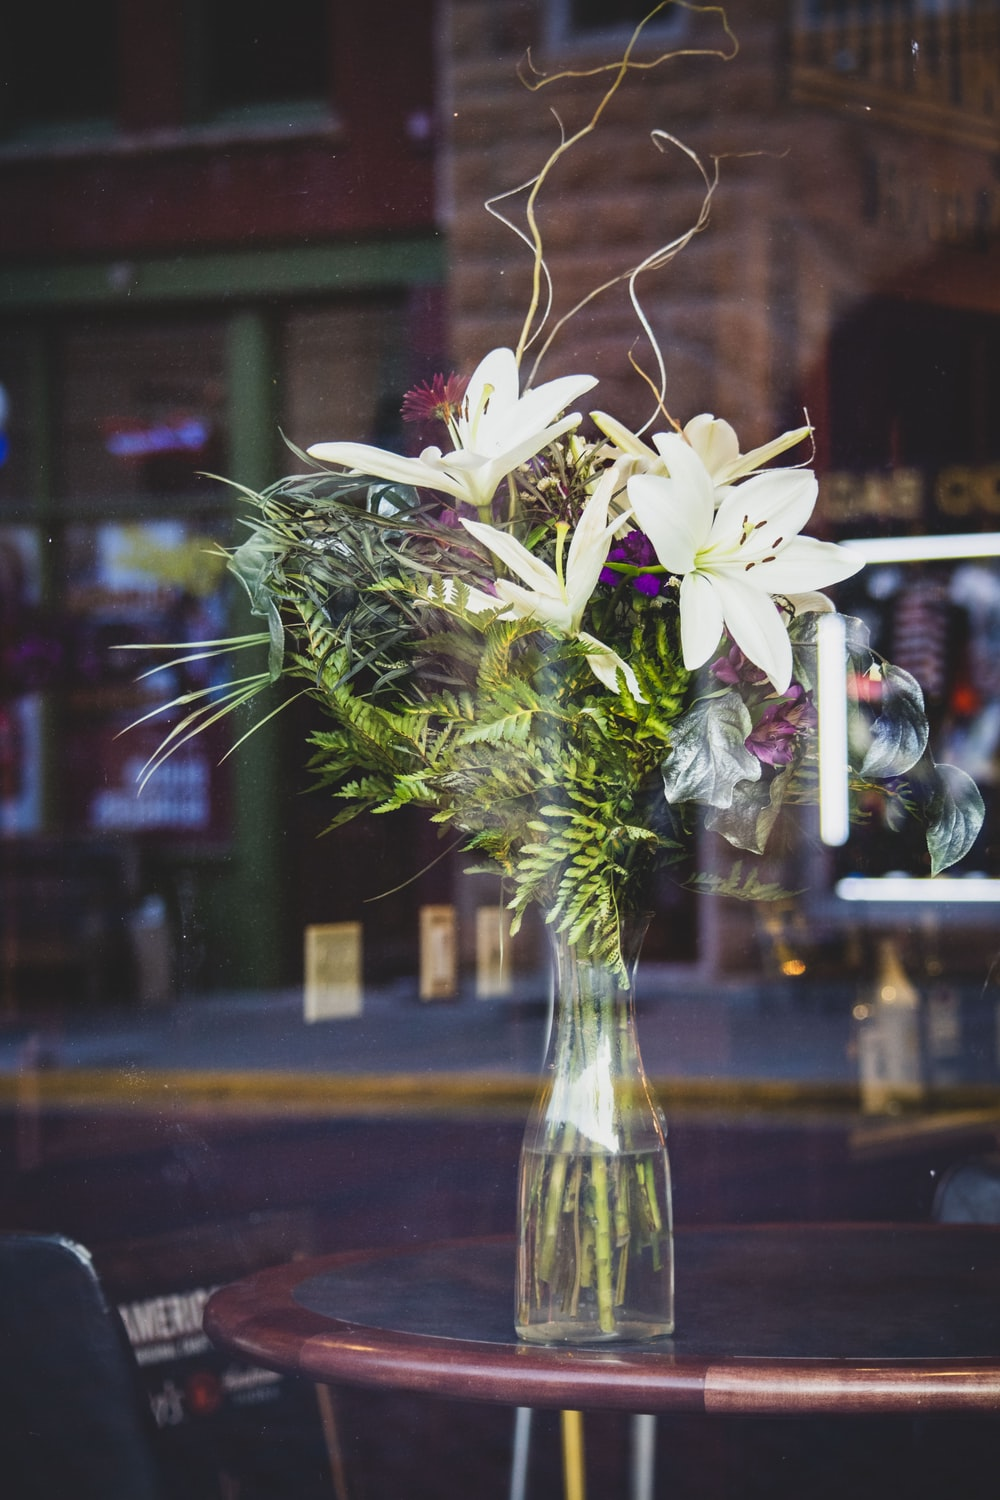 white lily flowers in clear glass vase on brown wooden tablee